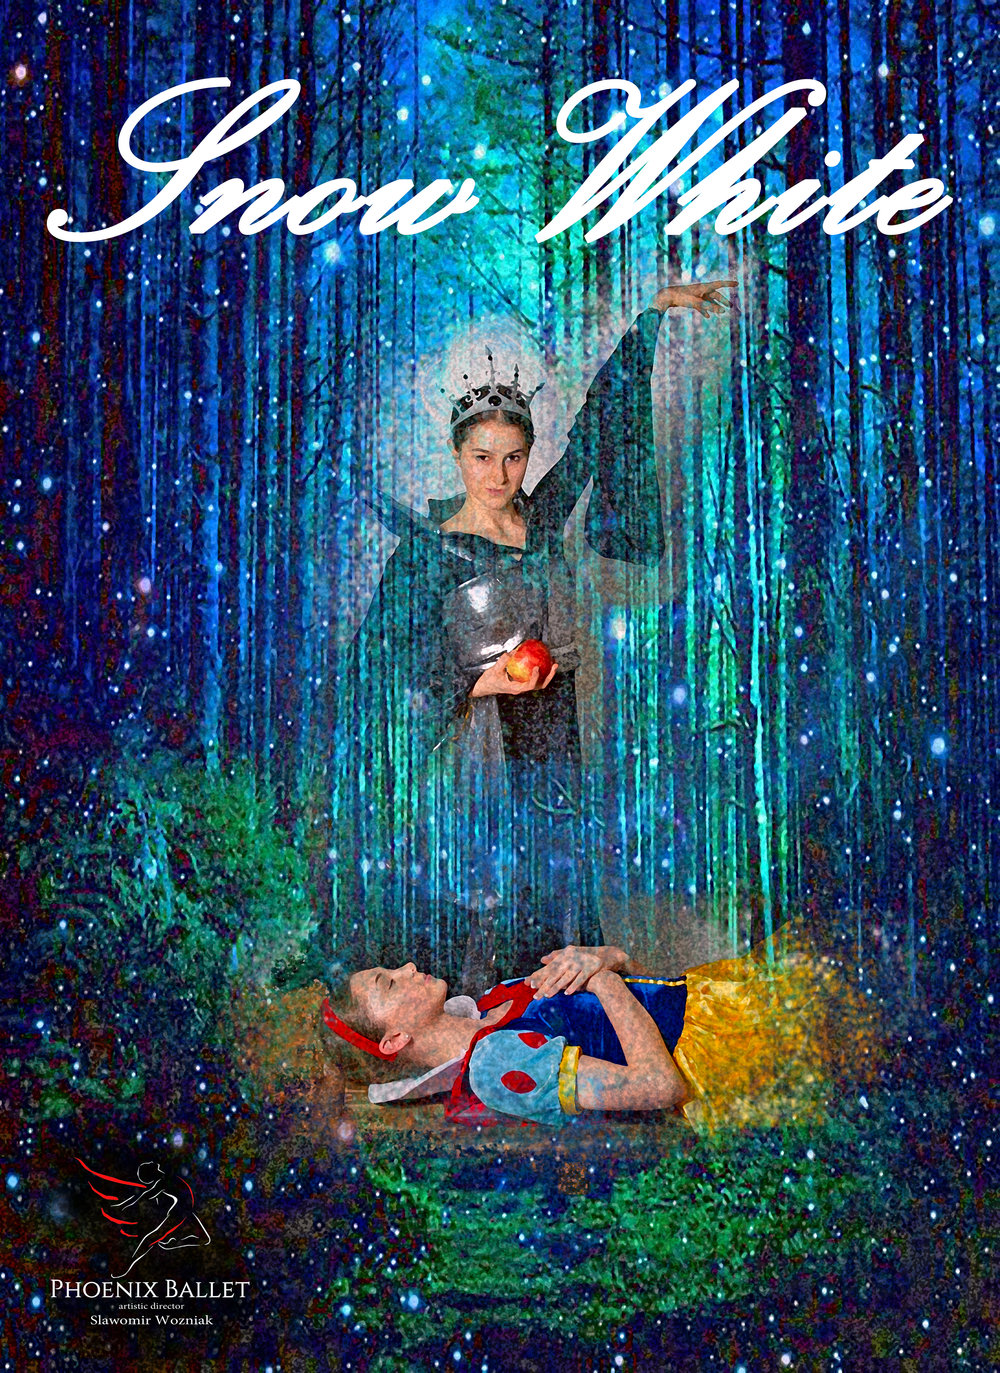 Phoenix Ballet presents the world premiere of Slawomir Wozniak's Snow White - This May 17-19 at the Orpheum TheatreFri May 17, 7PMSat May 18, 2PMSat May 18, 7PMSun May 19, 1PMCLICK HERE TO BUY TICKETSor call 602-262-7272Tickets start at just $20! Discounts for students, seniors, military and children.Mirror mirror on the wall... who's the fairest of  them all? The perfect Mother's Day gift! Phoenix Ballet presents the  world  premiere of Slawomir Wozniak's SNOW WHITE this May at the Orpheum  Theatre (203 W Adams, Phoenix.) Phoenix Ballet brings this classic  fairytale to life with a beautiful princess, seven dwarfs, and an evil queen  with a poisoned apple. This  family-friendly ballet is re-imagined with a classic flair and all  new choreography, beautiful sets and colorful costumes. Featuring  award-winning, internationally recognized professional dancers along  with students from one of the top ballet schools in the entire world,  Master Ballet Academy. May 17, 7PM, May 18, 2PM and 7PM, May 19, 1PM.